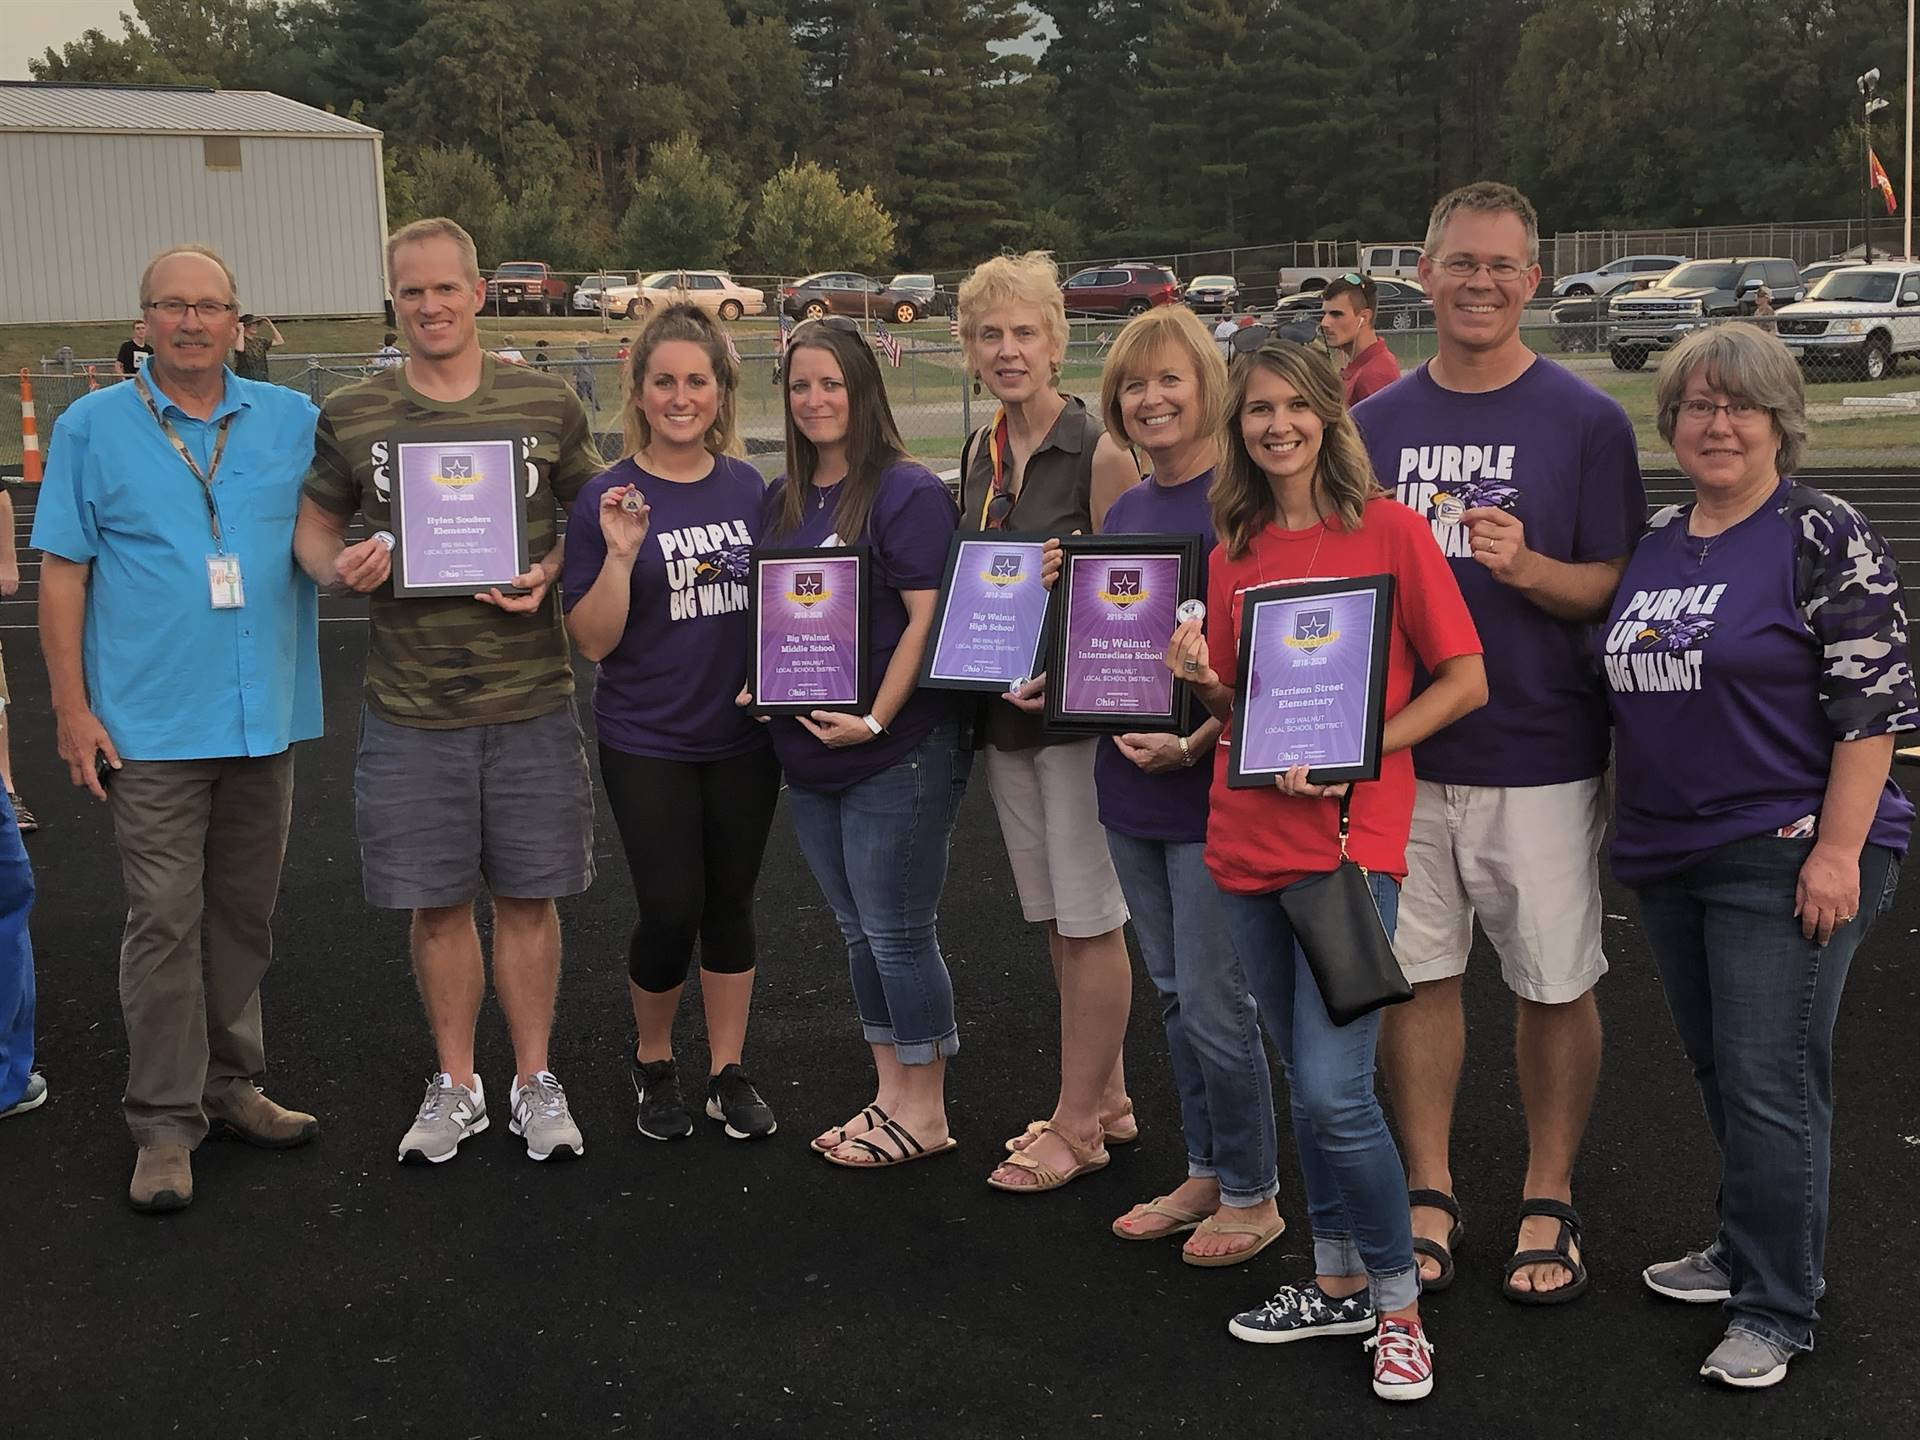 Purple Star Staff Liaisons with Awards